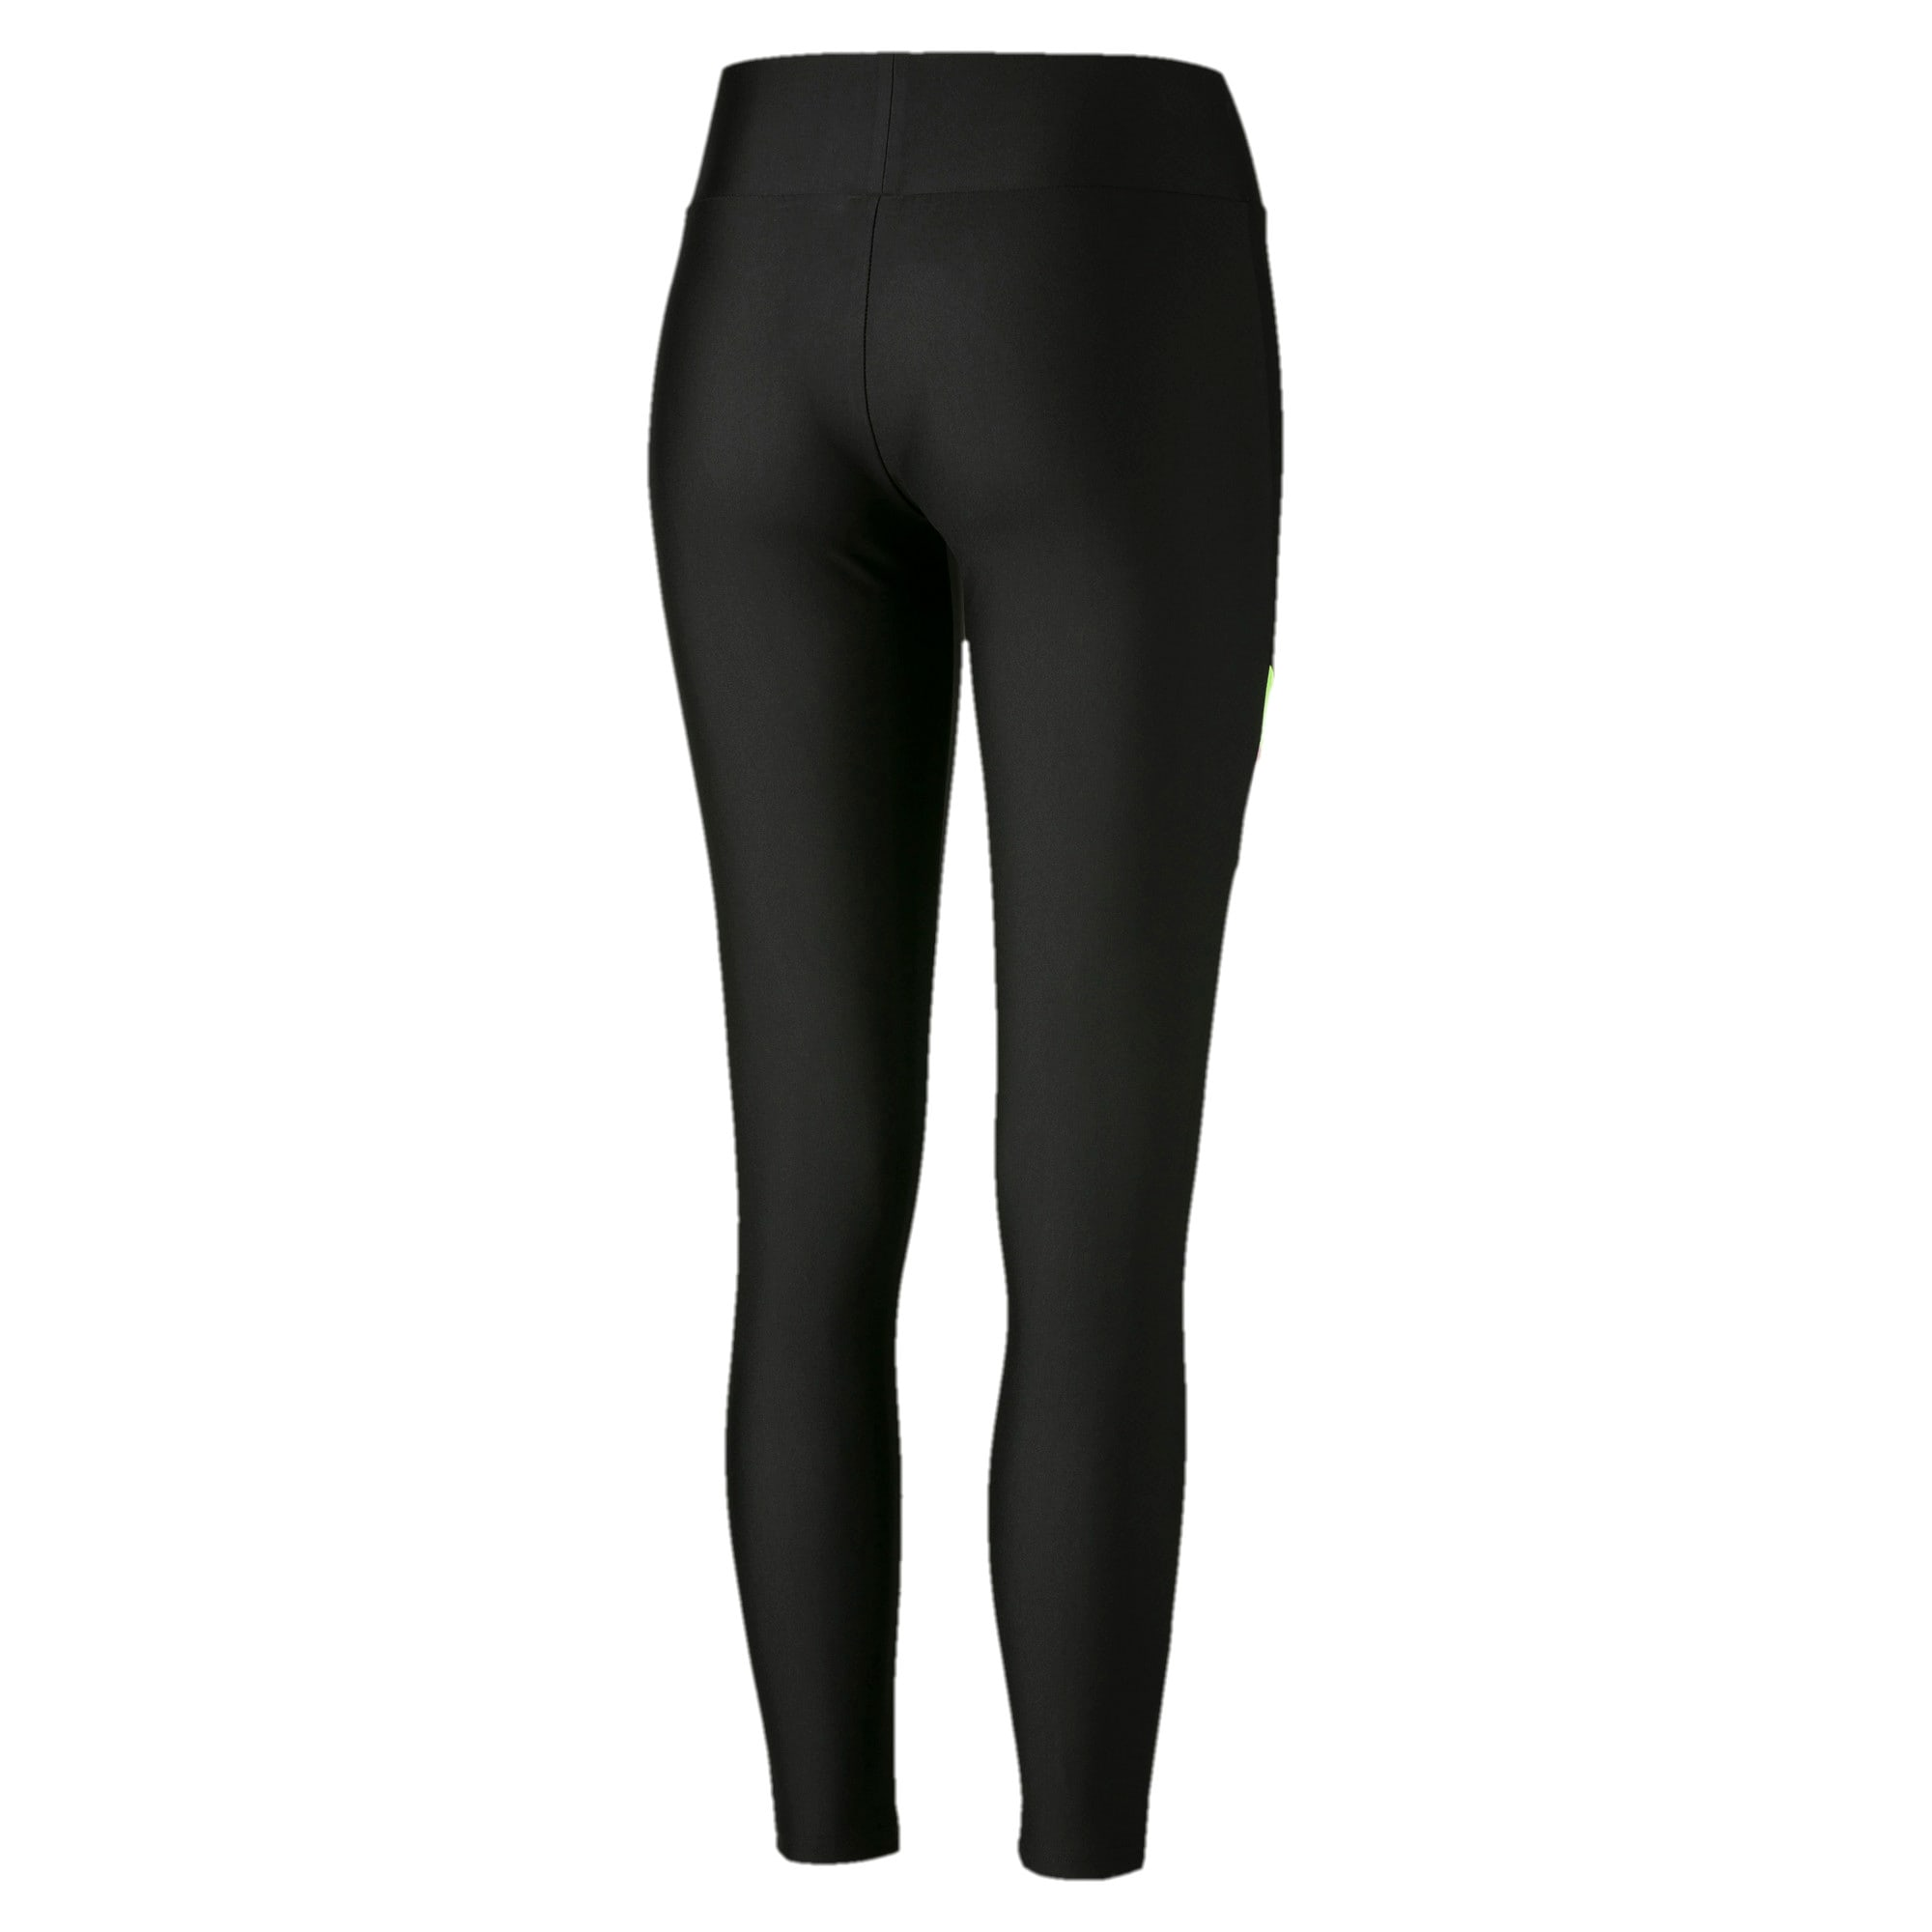 Thumbnail 5 of Chase Women's Leggings, Puma Black, medium